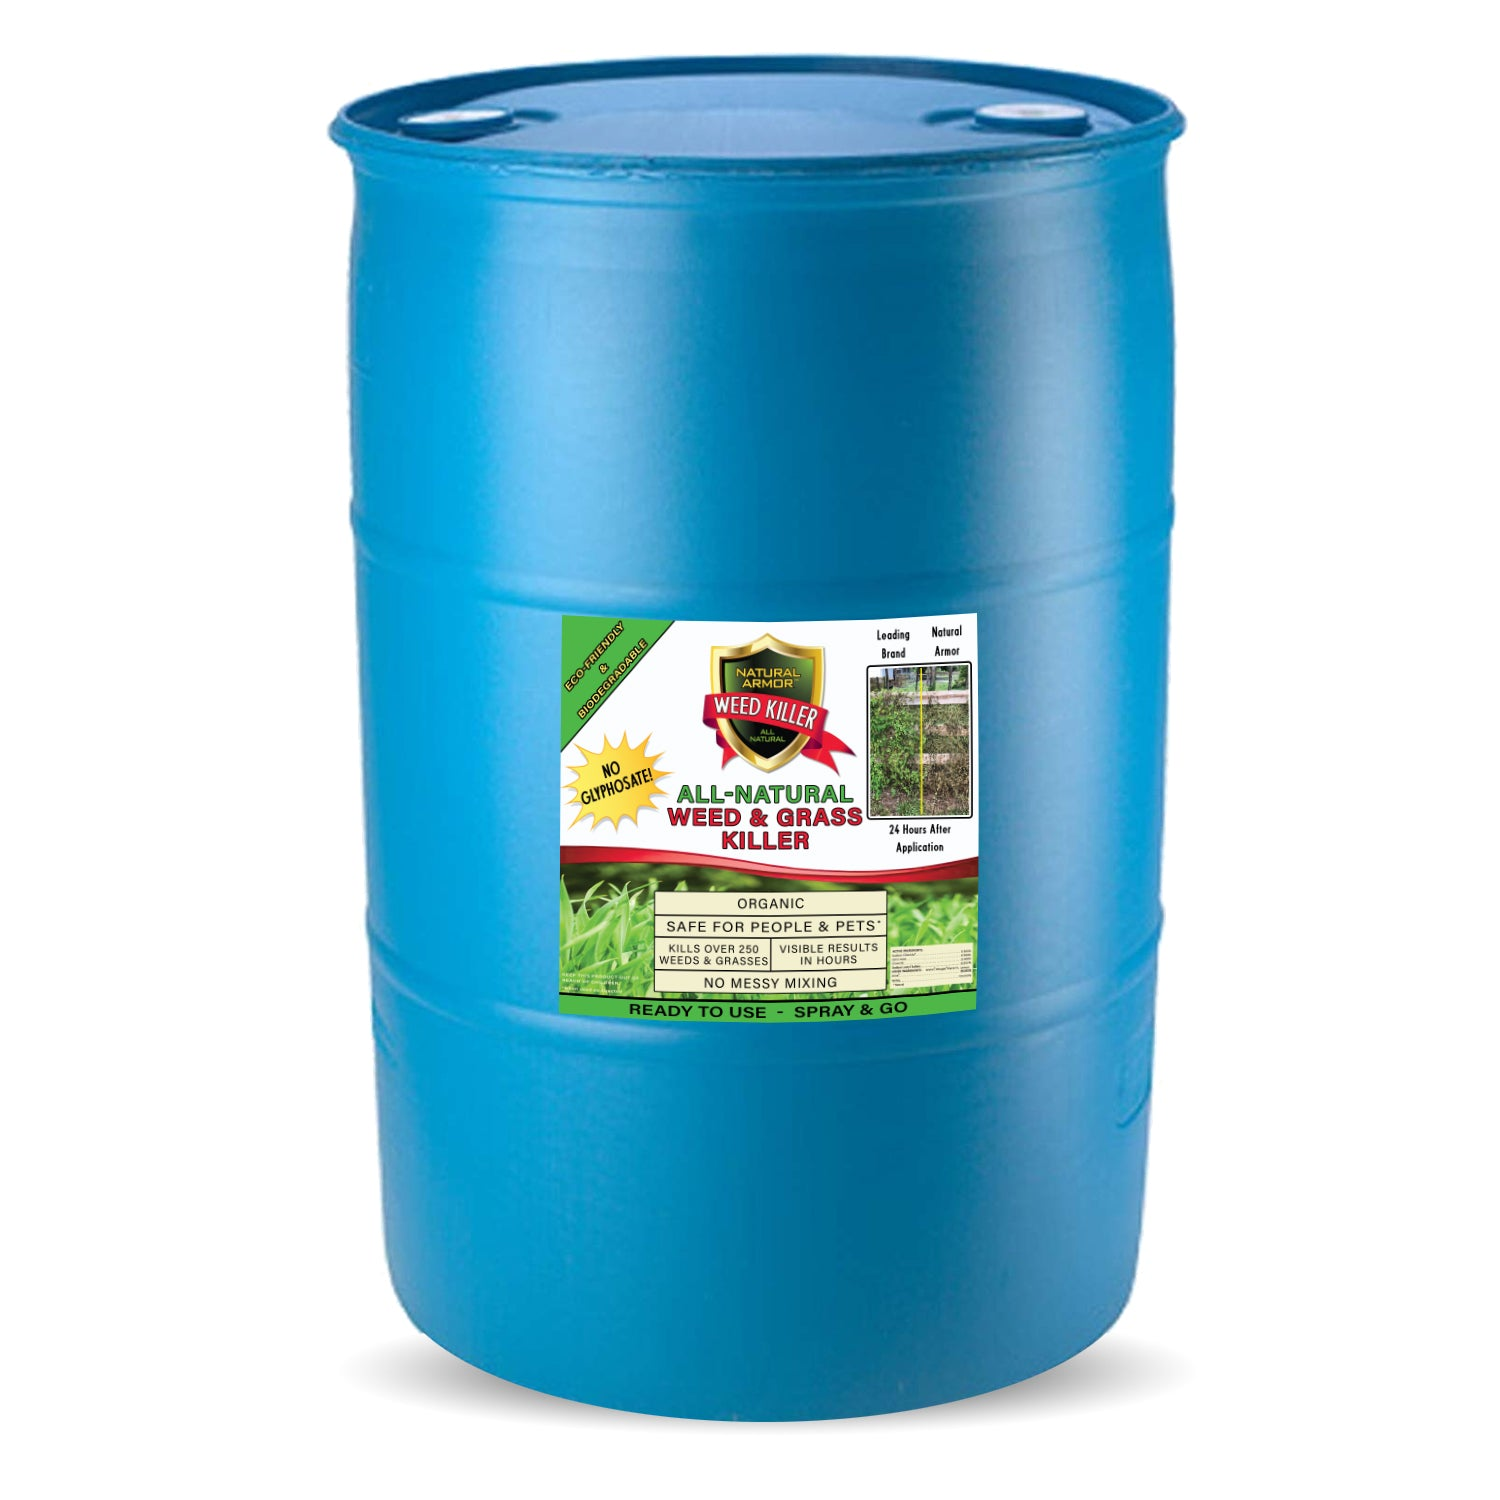 Natural Armor All-Natural Weed Killer - (1) 30 GALLON DRUM